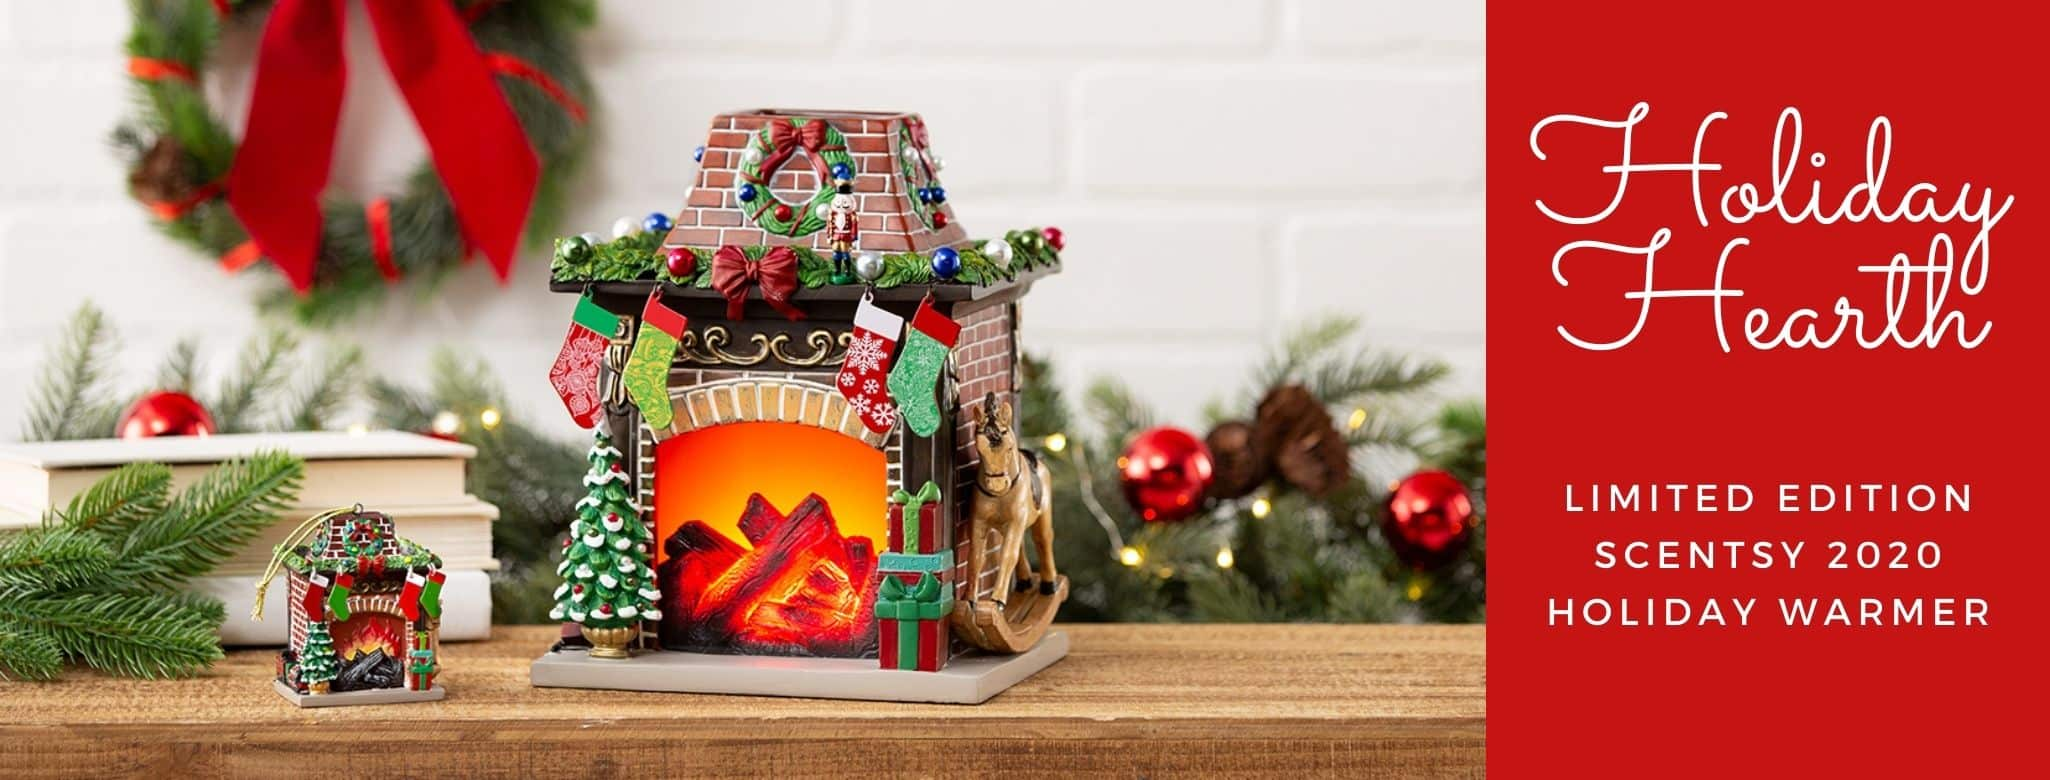 SCENTSY HOLIDAY HEARTH WARMER 2020 LIMITED EDITION